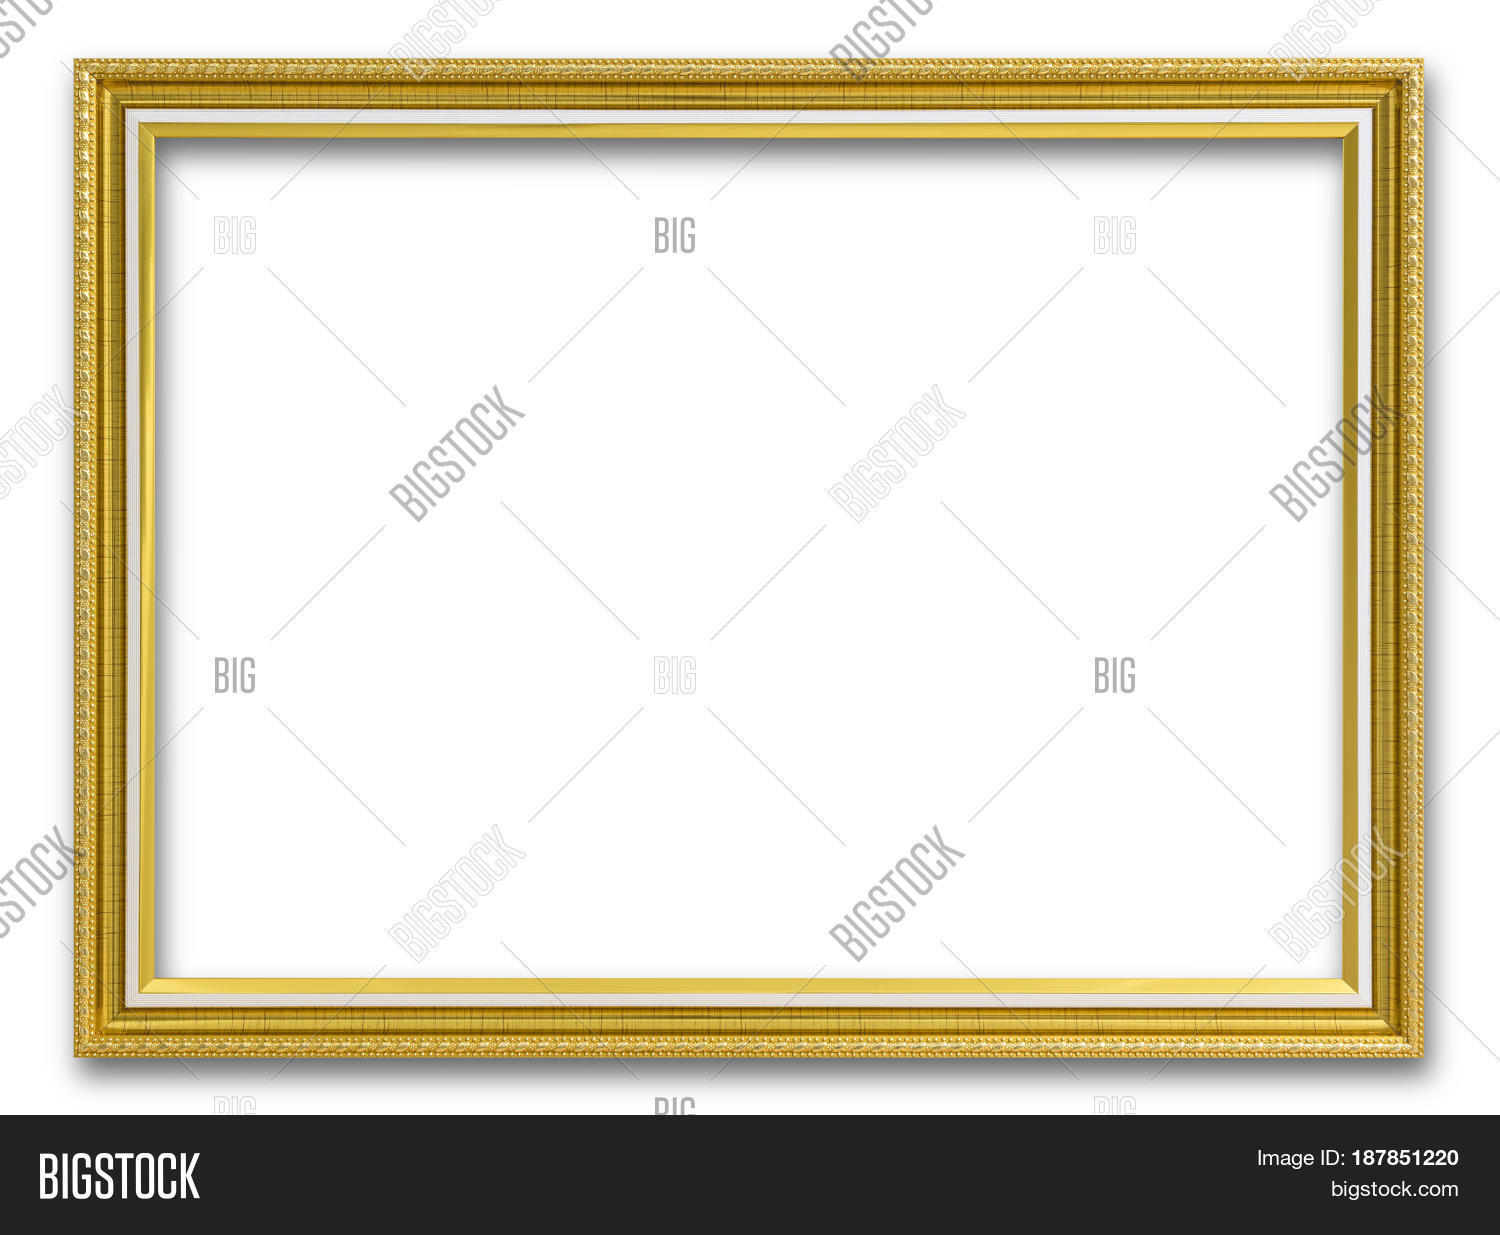 antique,art,background,blank,border,classical,decoration,decorative,design,drawing,edge,empty,exhibition,frame,framework,furniture,gallery,gold,golden,grunge,image,isolated,museum,painting,photo,photography,picture,portrait,rectangular,retro,rustic,space,square,style,traditional,vintage,wall,wood,wooden,yellow